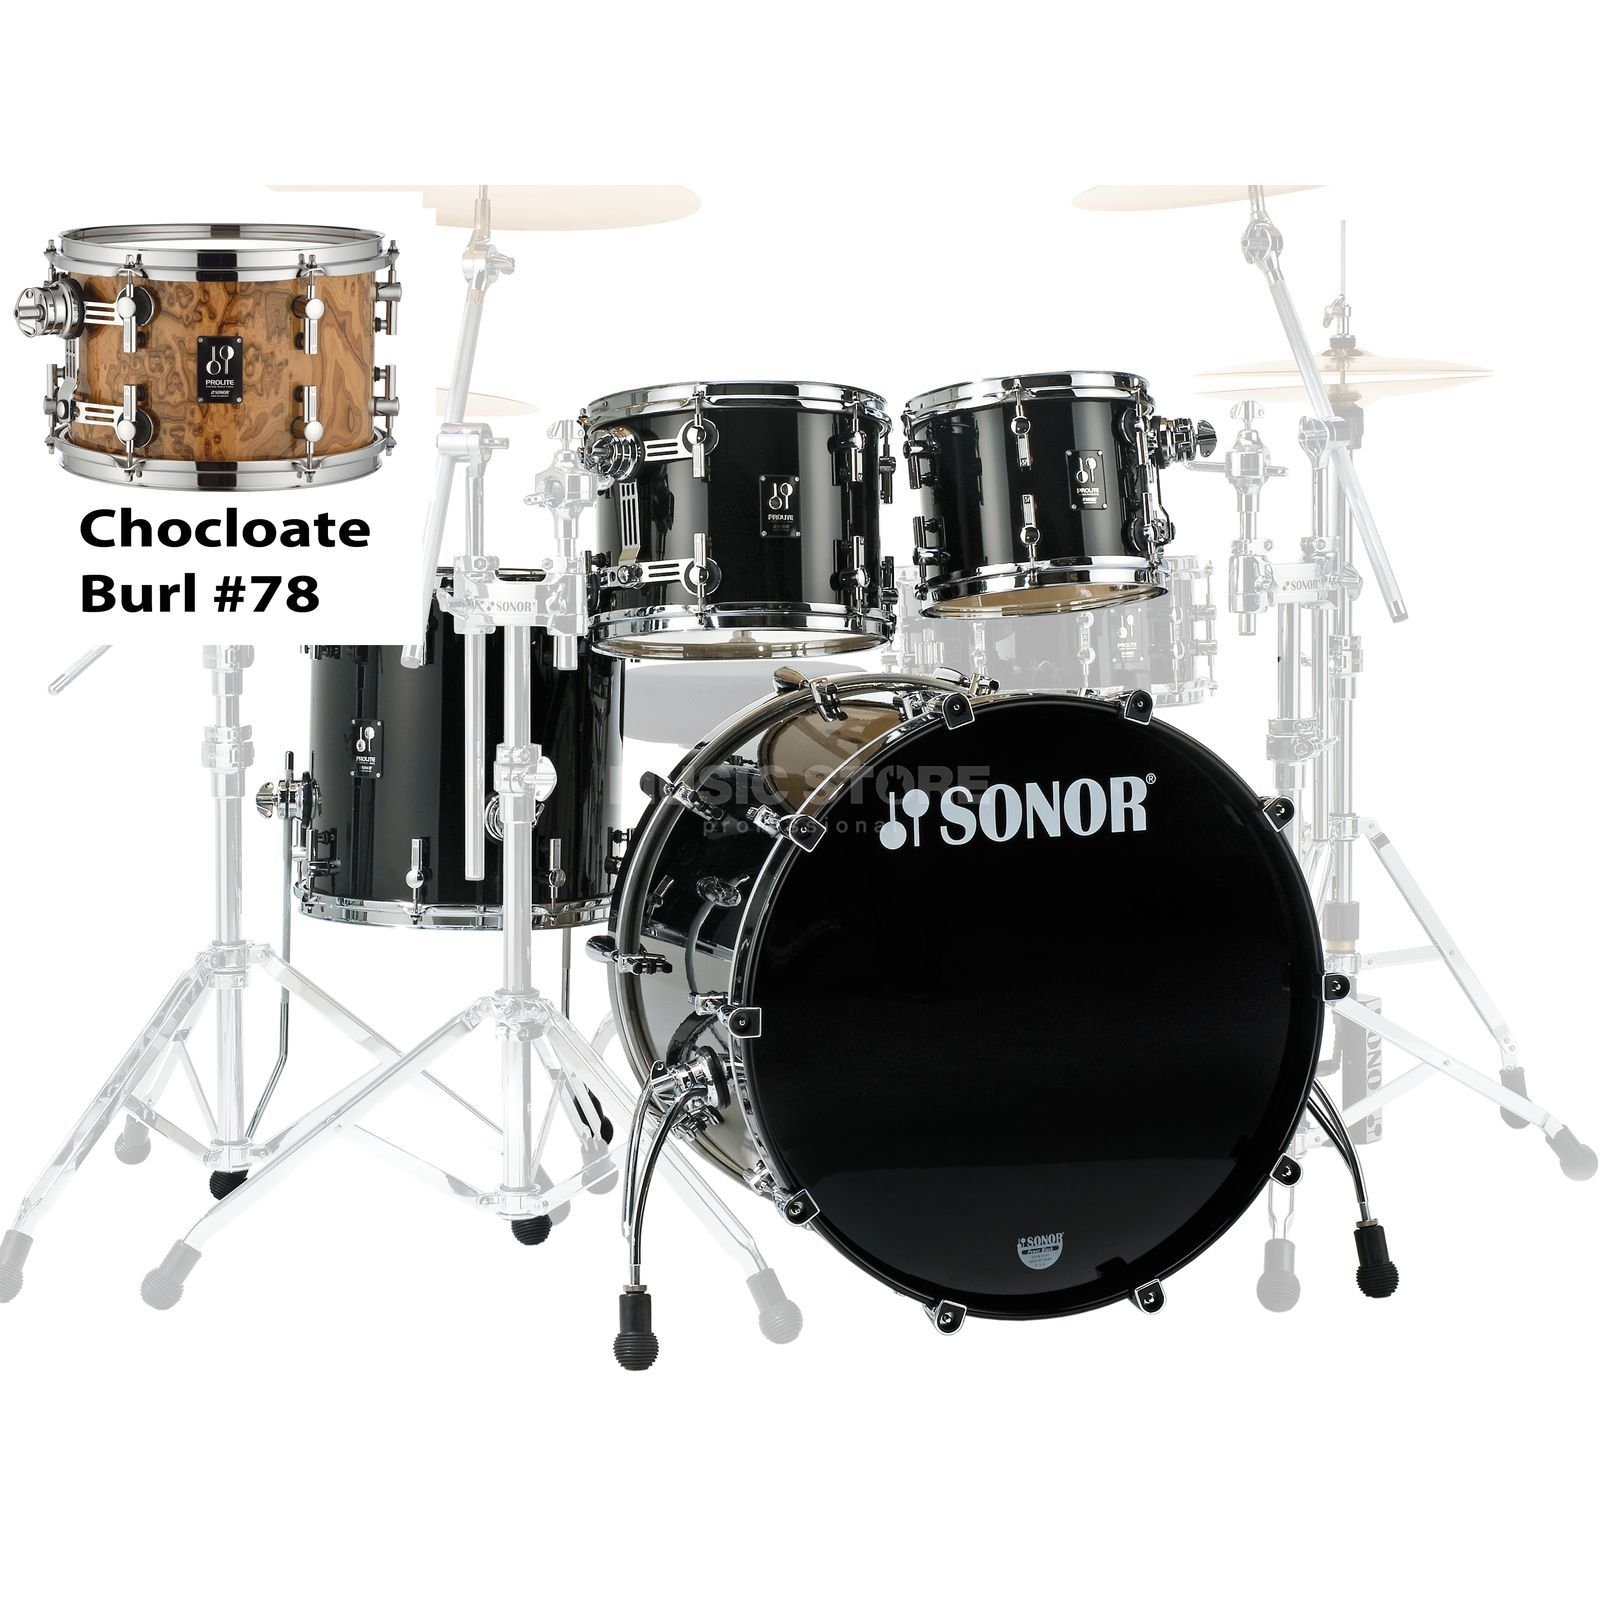 Sonor ProLite Stage 3, Chocolate Burl #79 Produktbillede